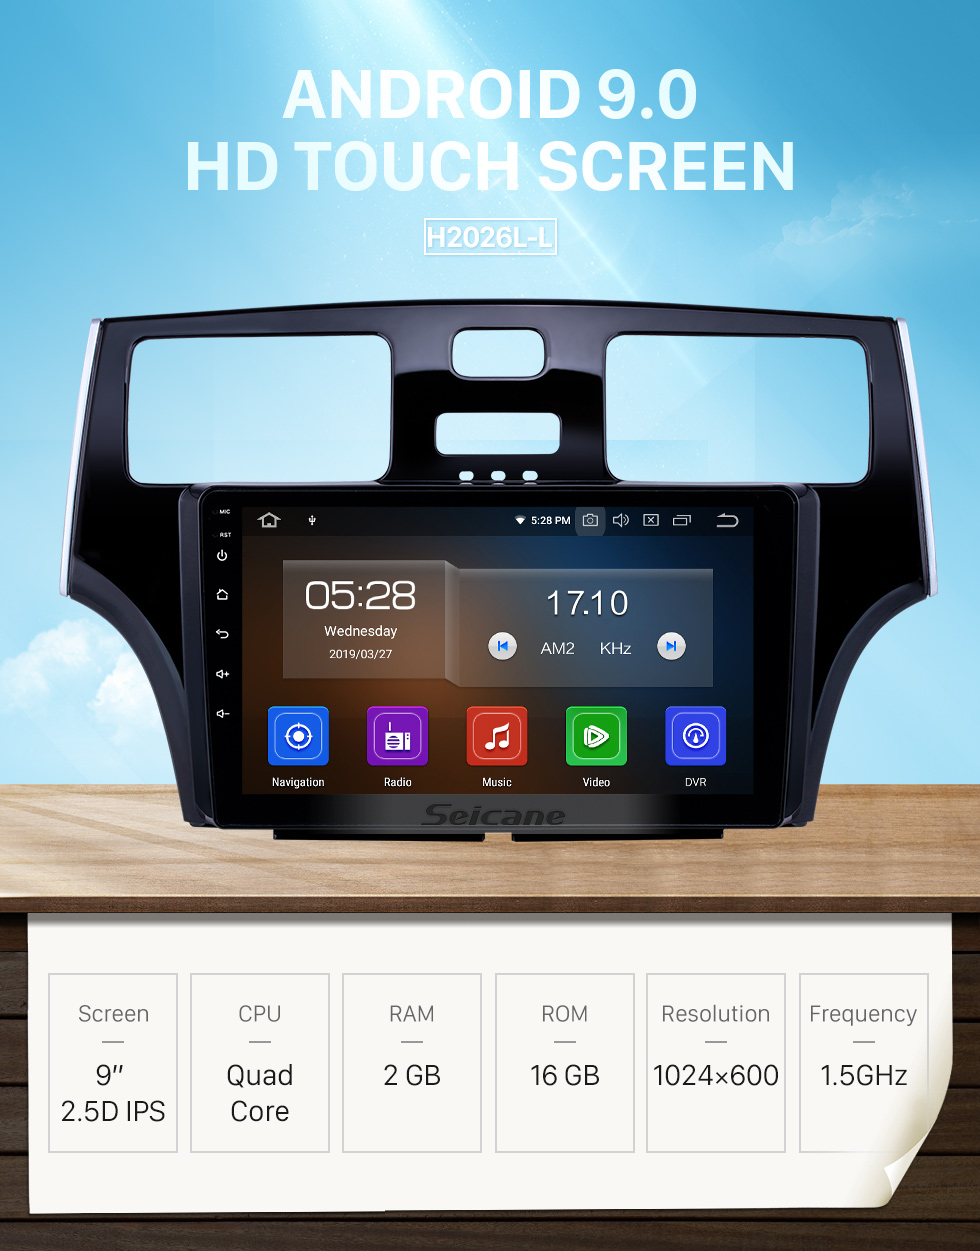 Seicane 9 inch HD Touchscreen Radio for 2001 2002 2003 2004 2005 Lexus ES300 Android 9.0 GPS Navigation Multimedia Bluetooth Phone SWC WIFI USB Carplay Rearview DVR 1080P Video